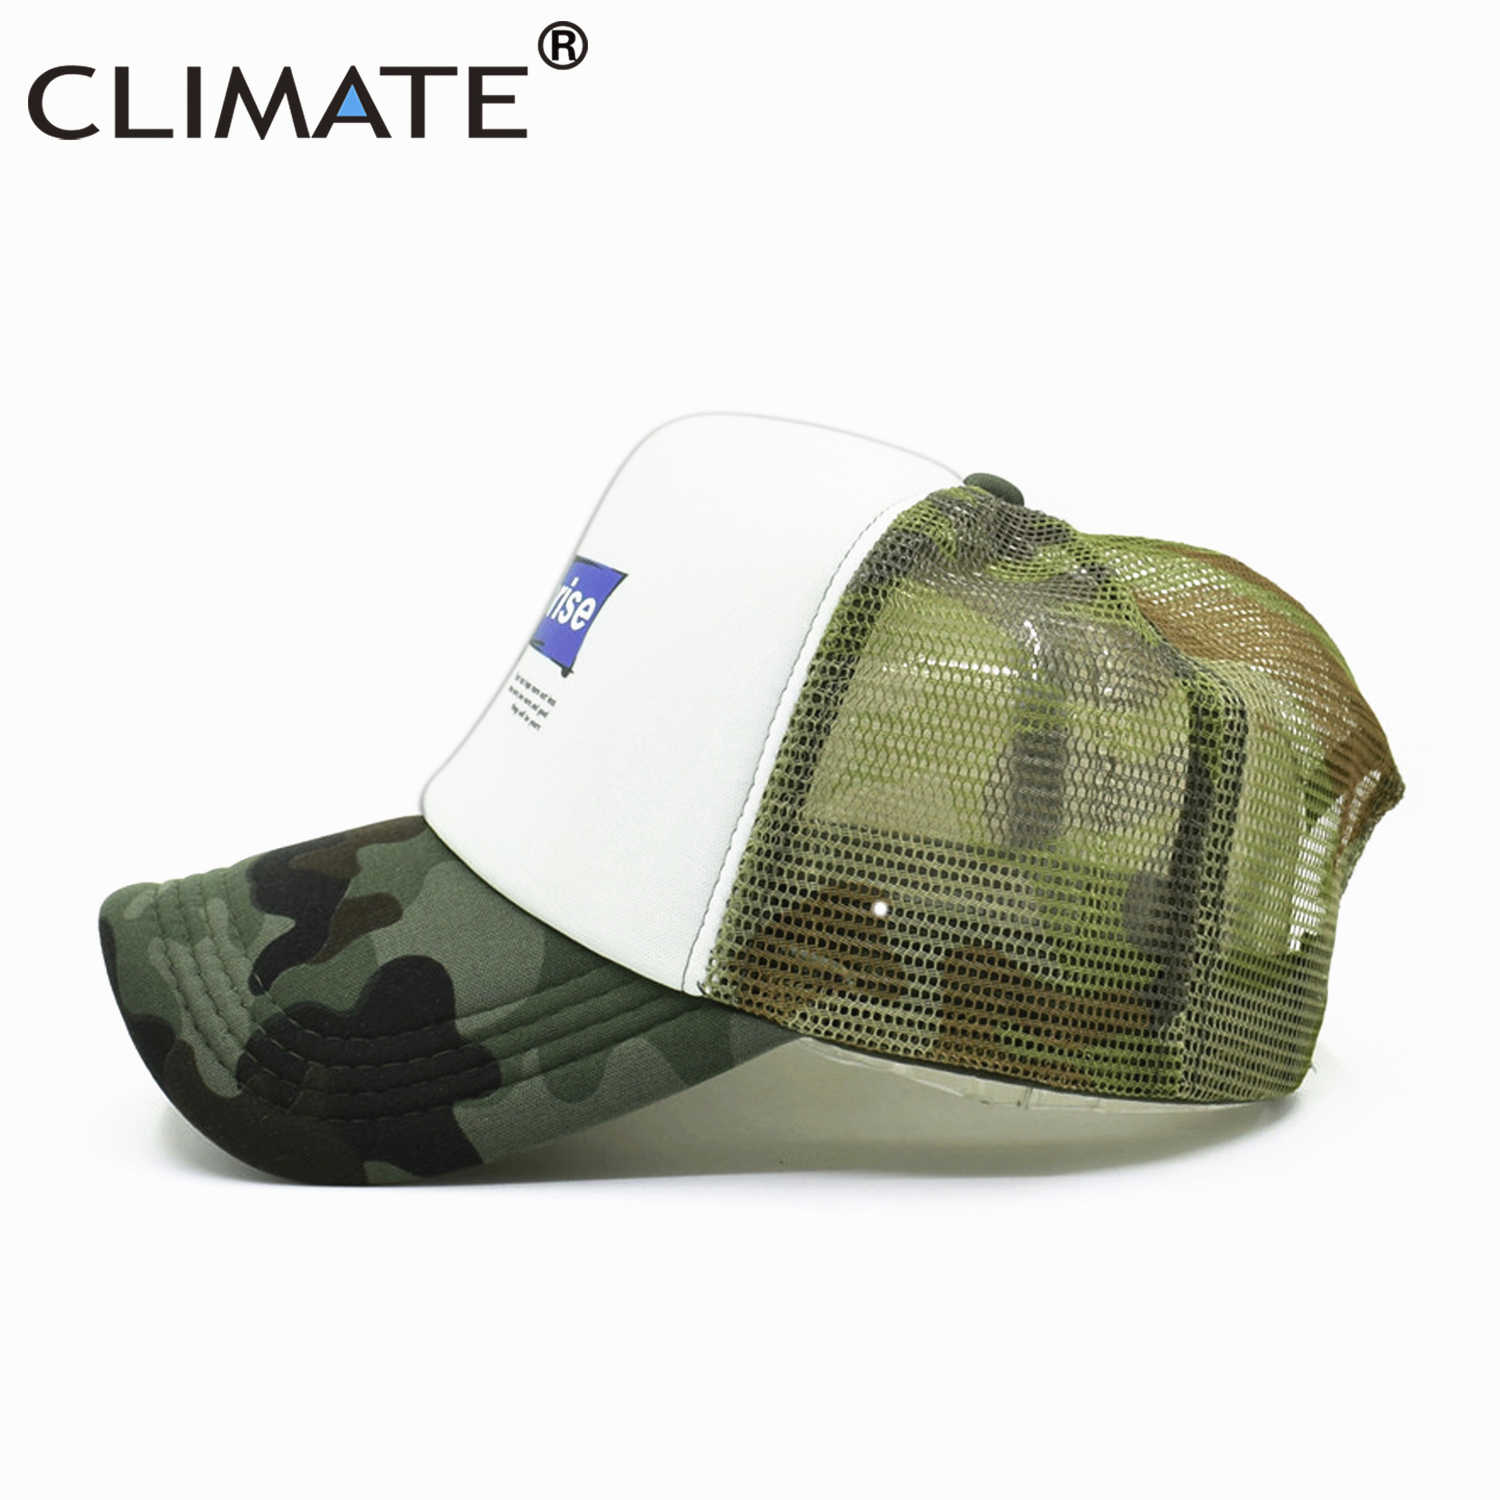 962b1685a CLIMATE New Surprise Trucker Cap Cool Summer Spring Baseball Caps Funny Hip  Hop Camouflage Caps Mesh Hat for Men Women Youth